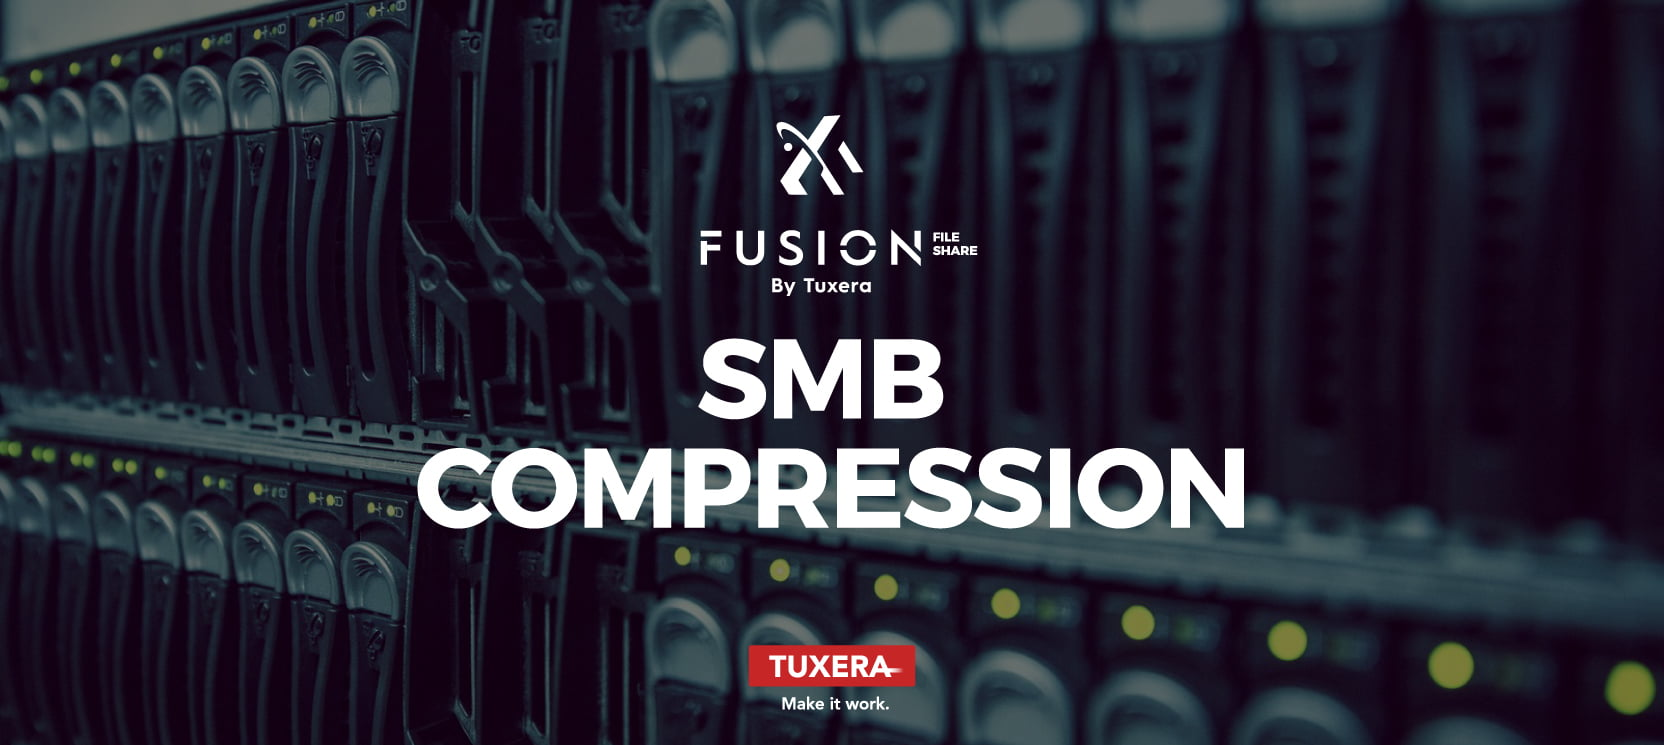 Tuxera First to Bring Network Bandwidth-Saving SMB Compression Feature to Linux Environments